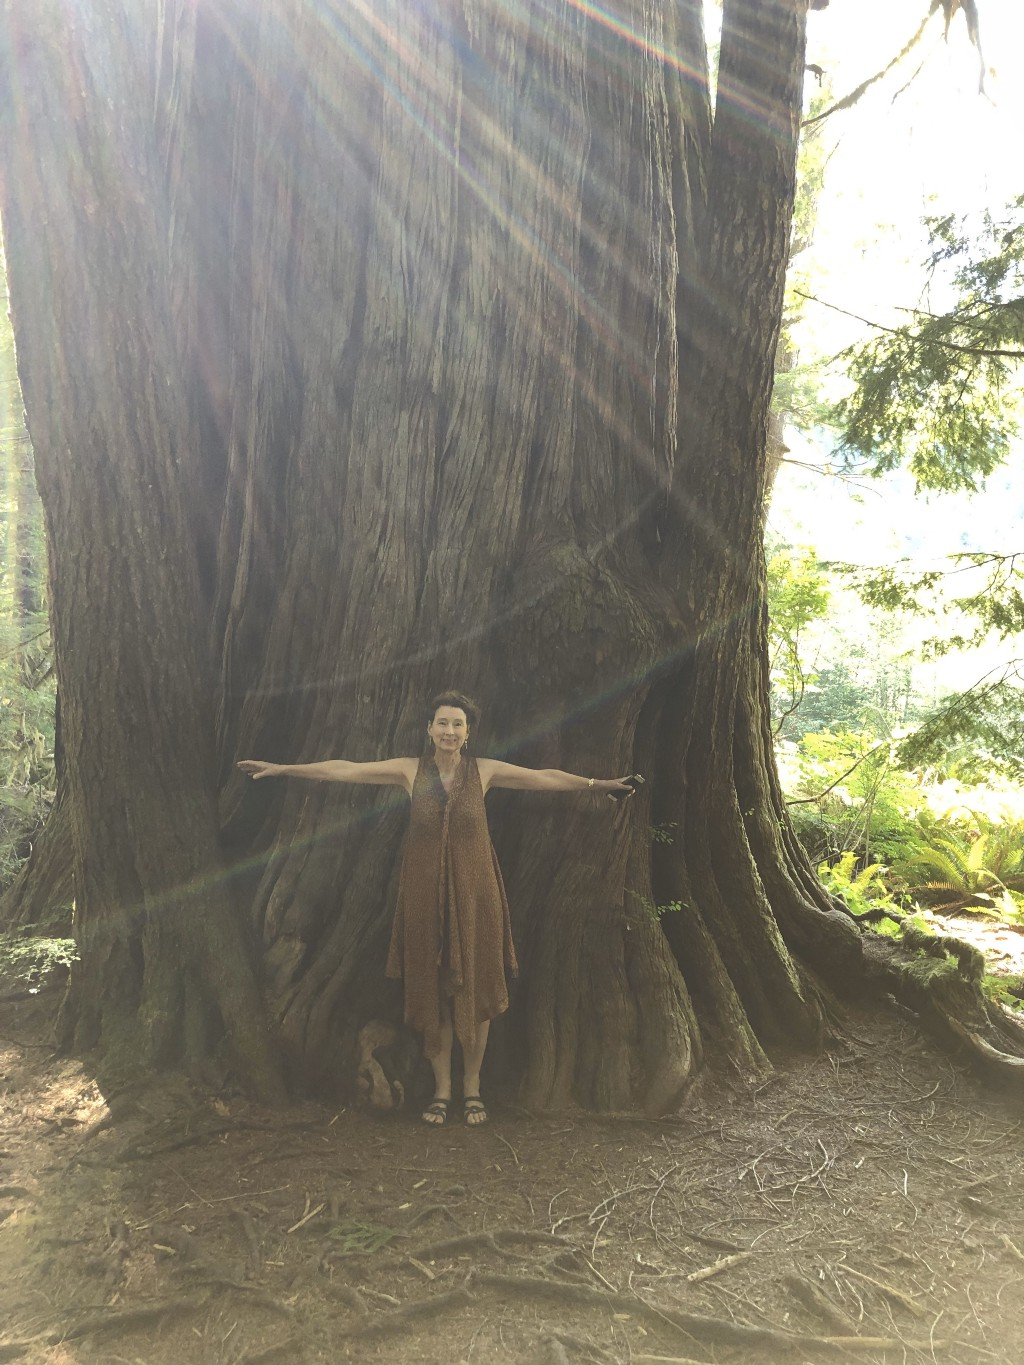 The lower trunk of an ancient cedar; the width of which is twice the outstretched arm spans of the author standing before it.